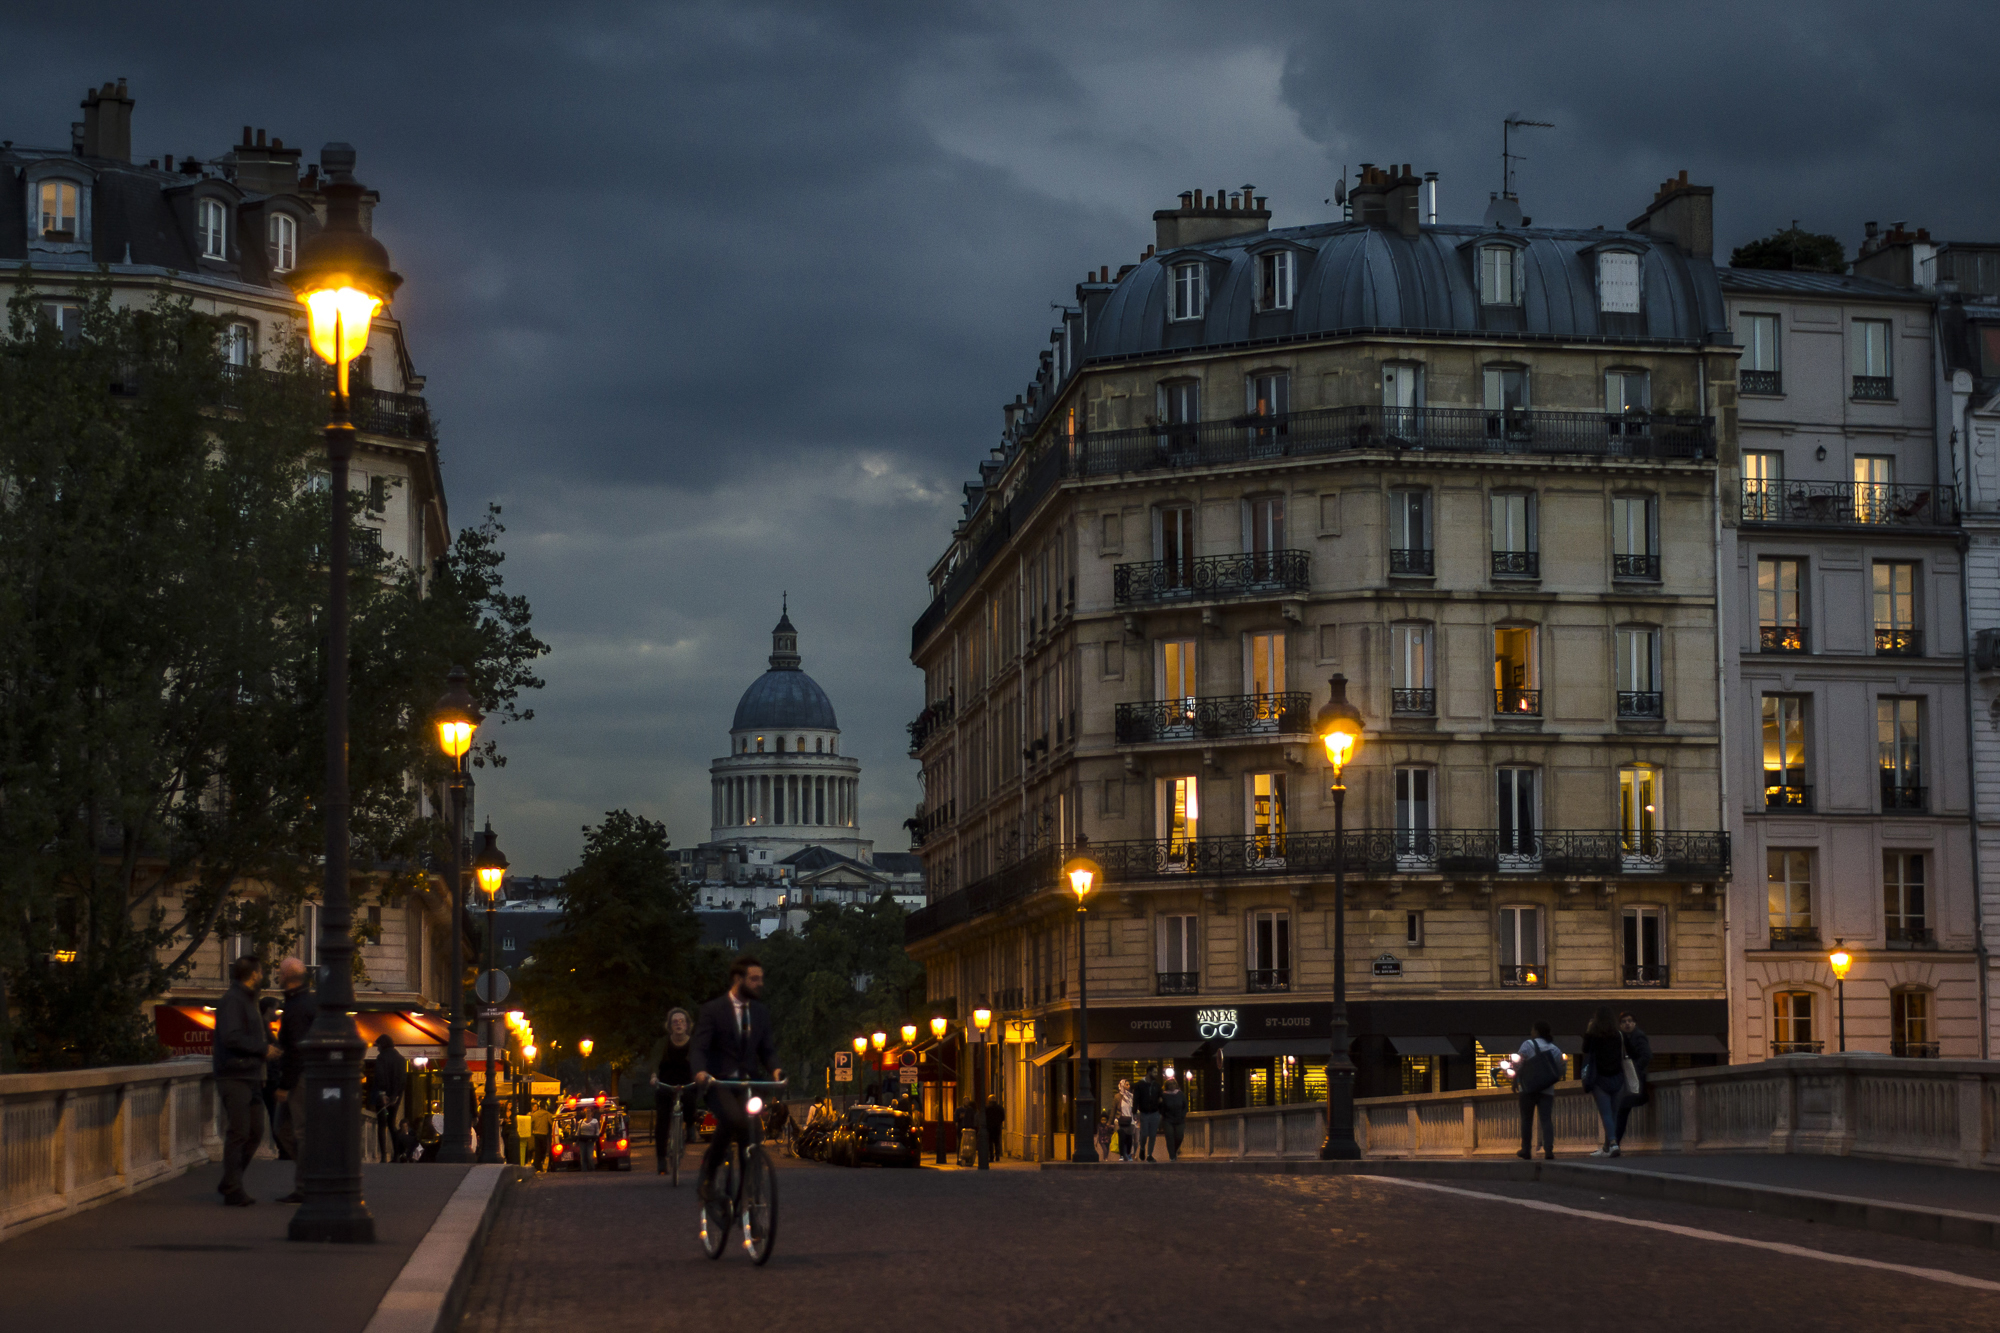 paris-night-photo-tour-007.jpg